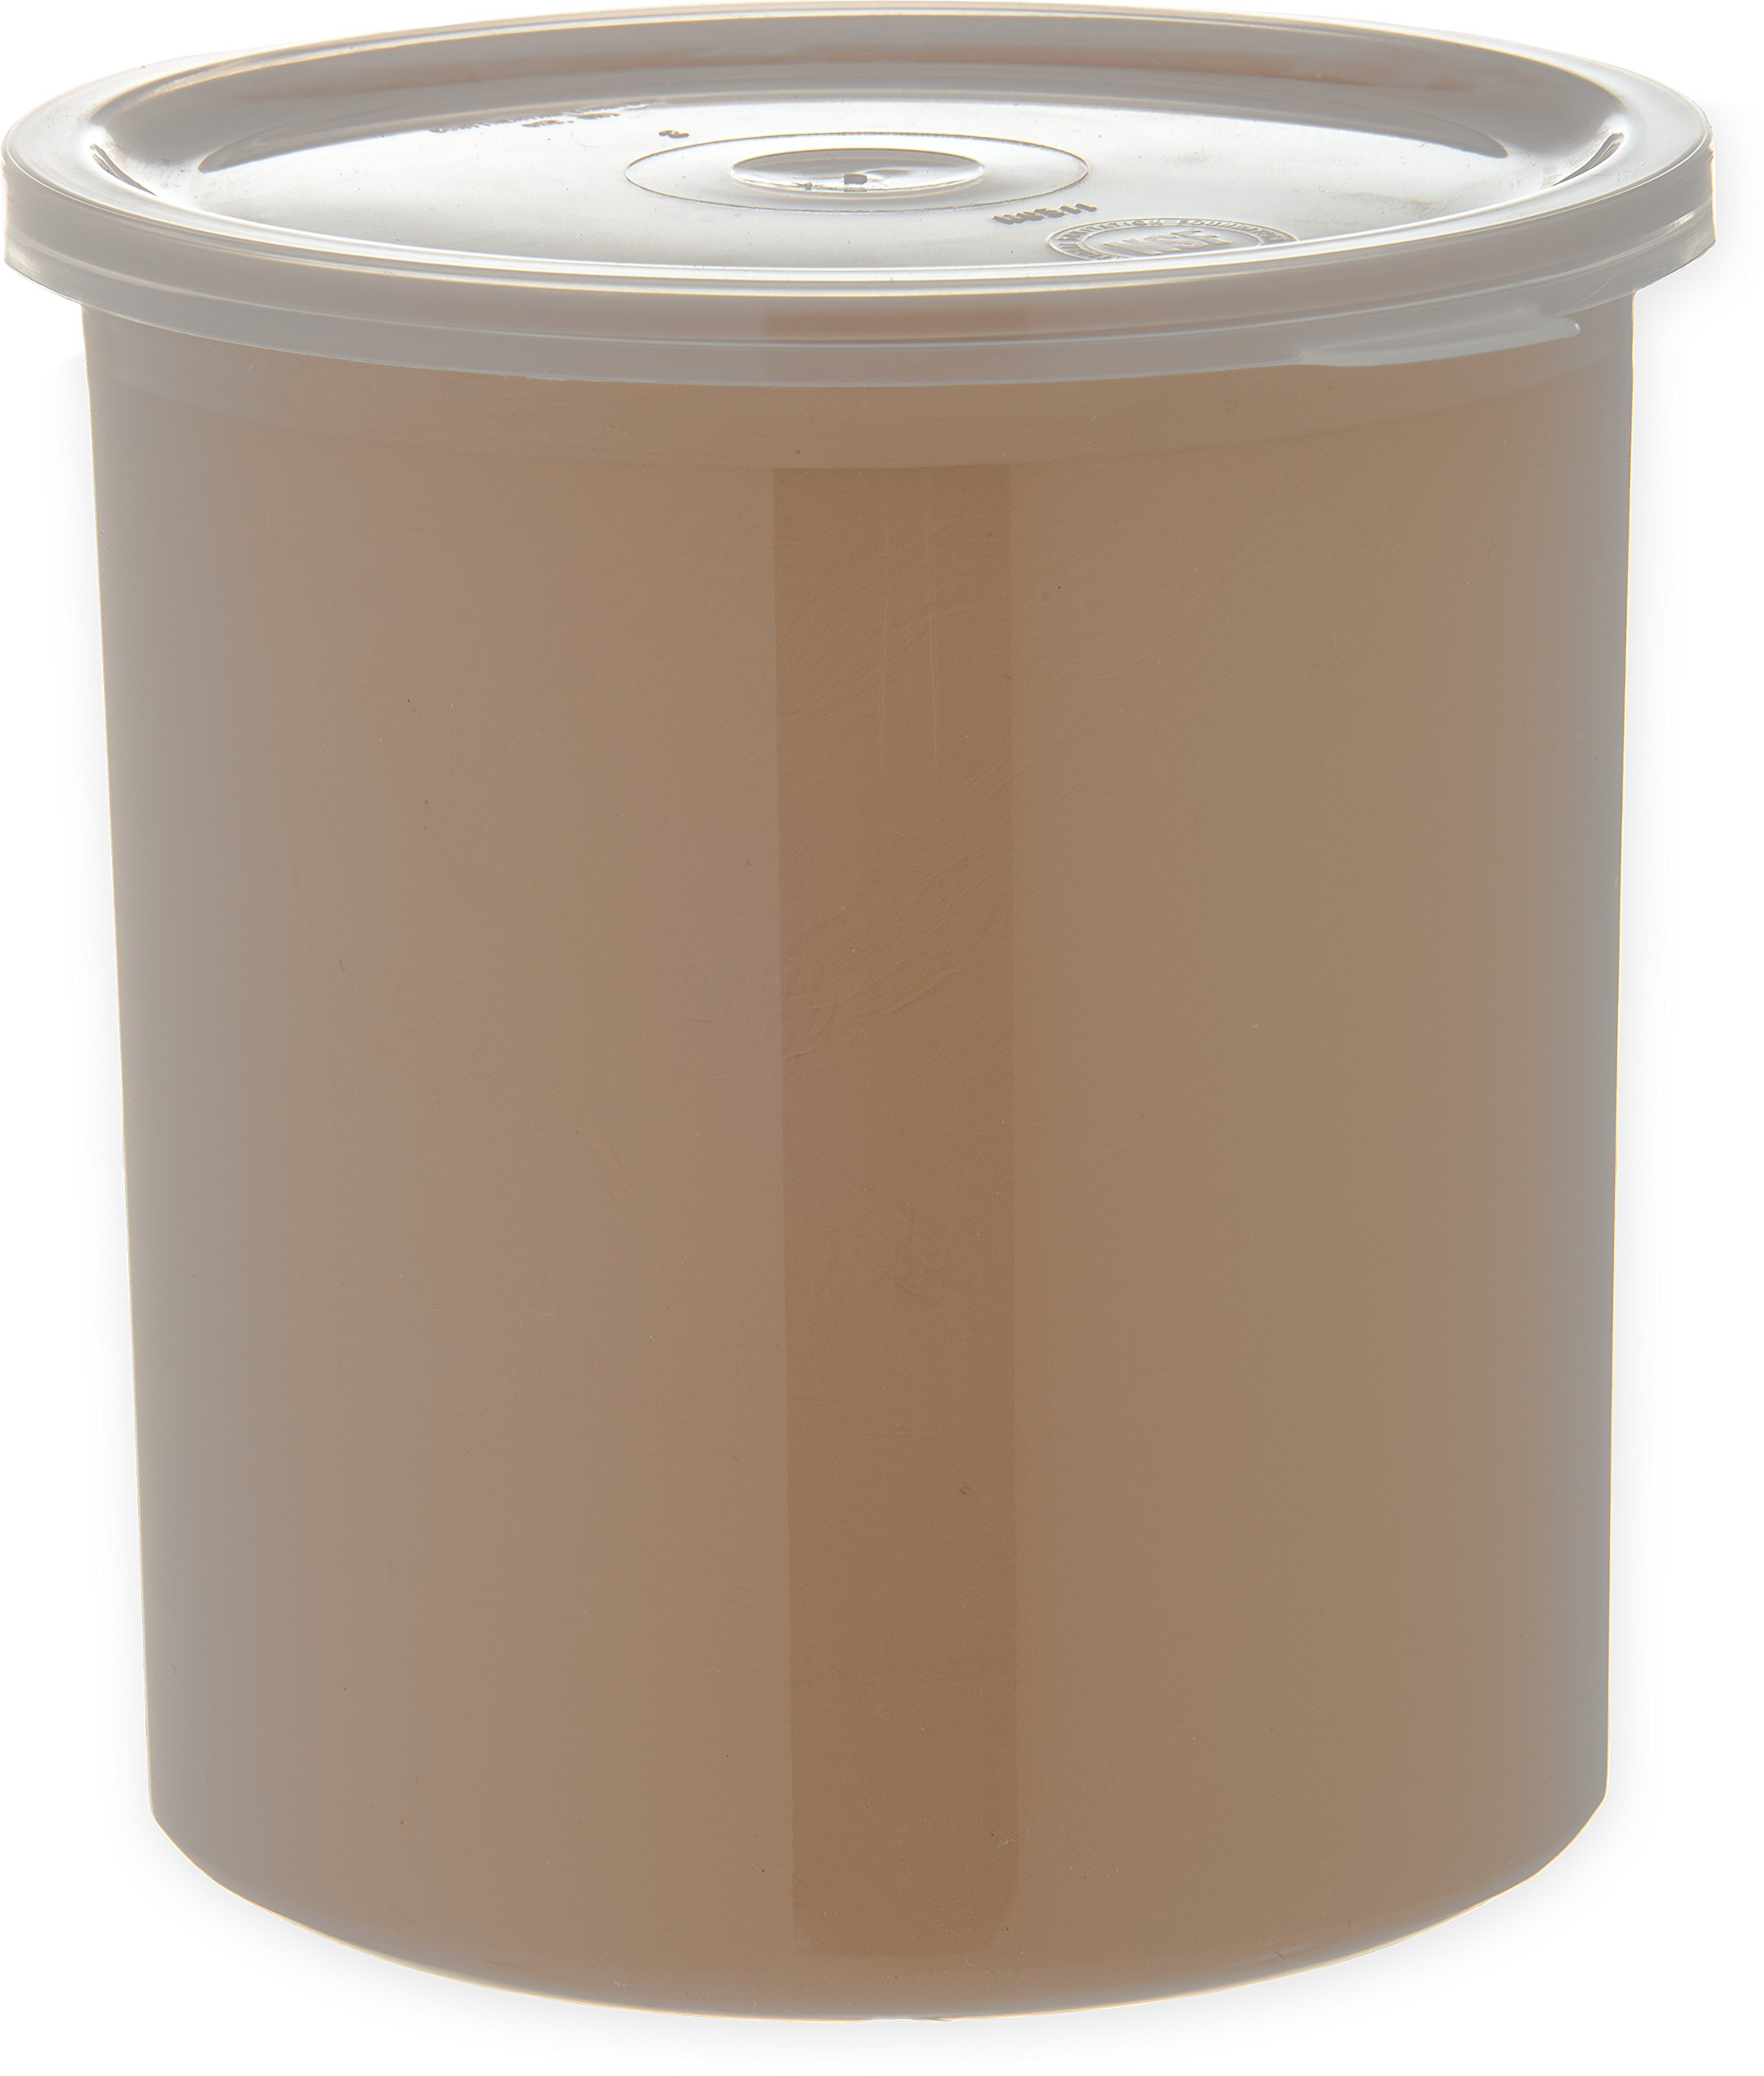 Carlisle 030106 Solid Color Commercial Round Storage with Lid, 1.2 Quart Capacity, Beige (Pack of 12)